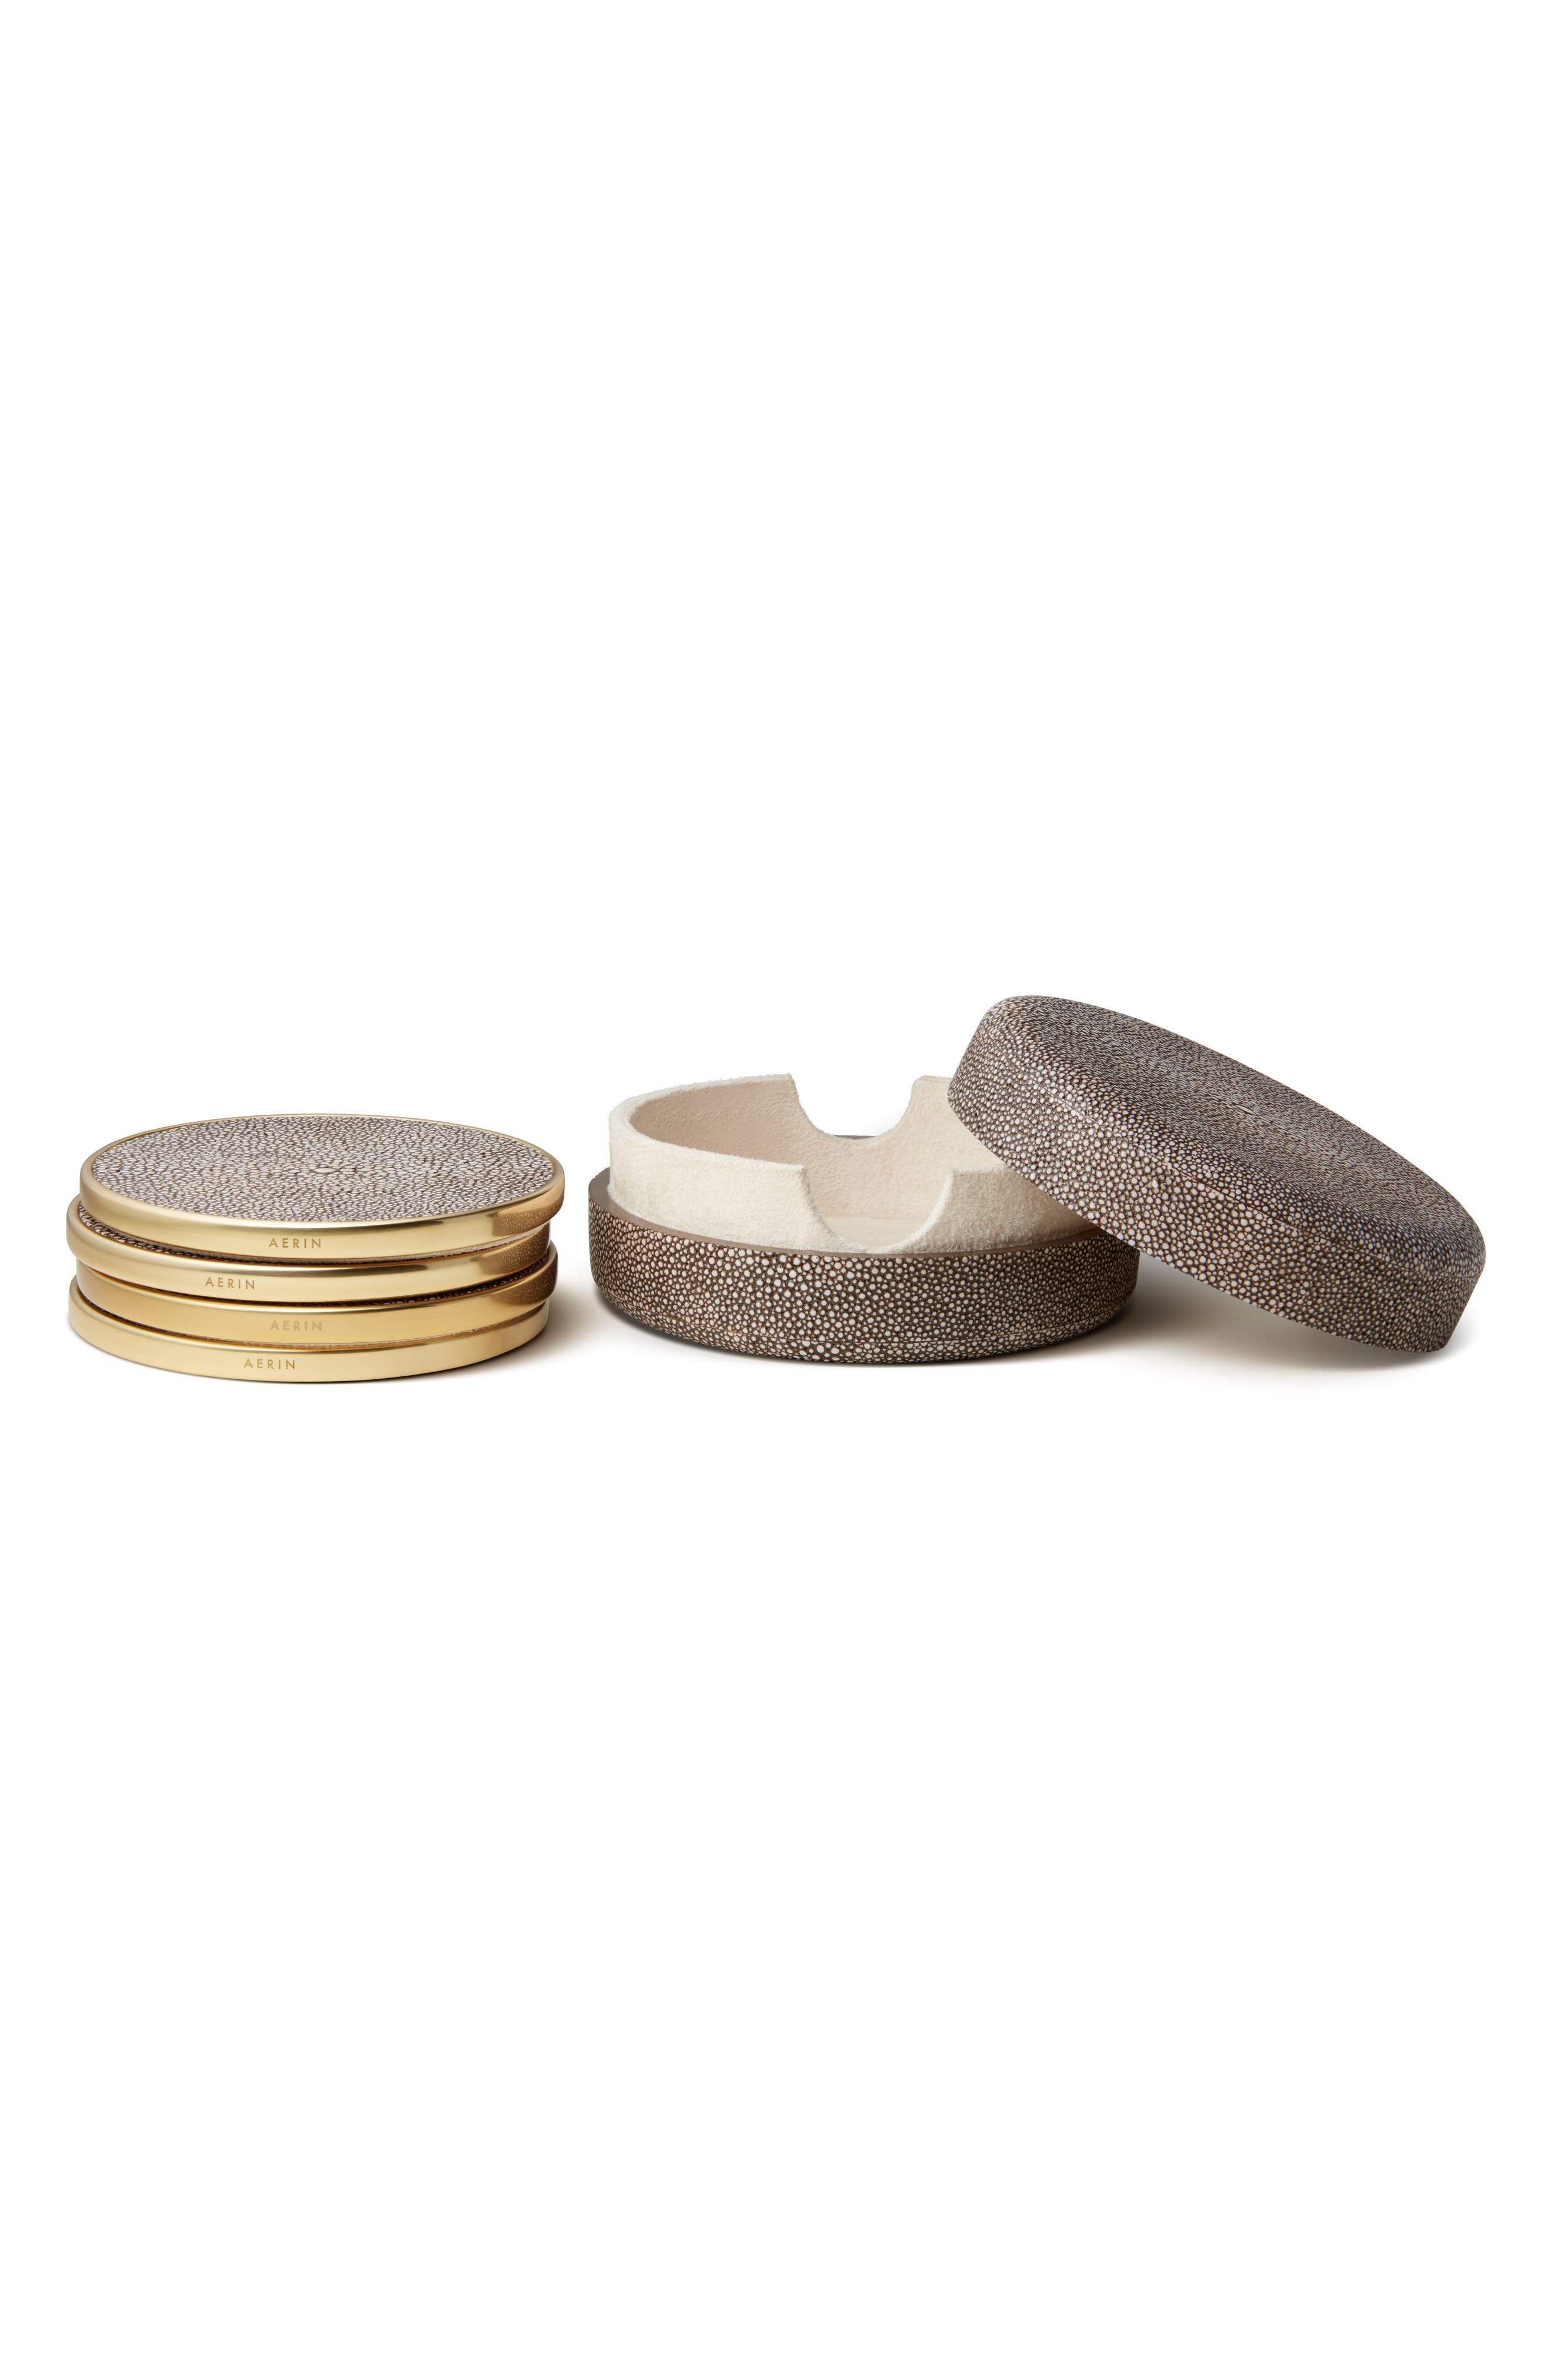 Chocolate Shagreen Set of 4 Coasters,                         Main,                         color, METALLIC GOLD